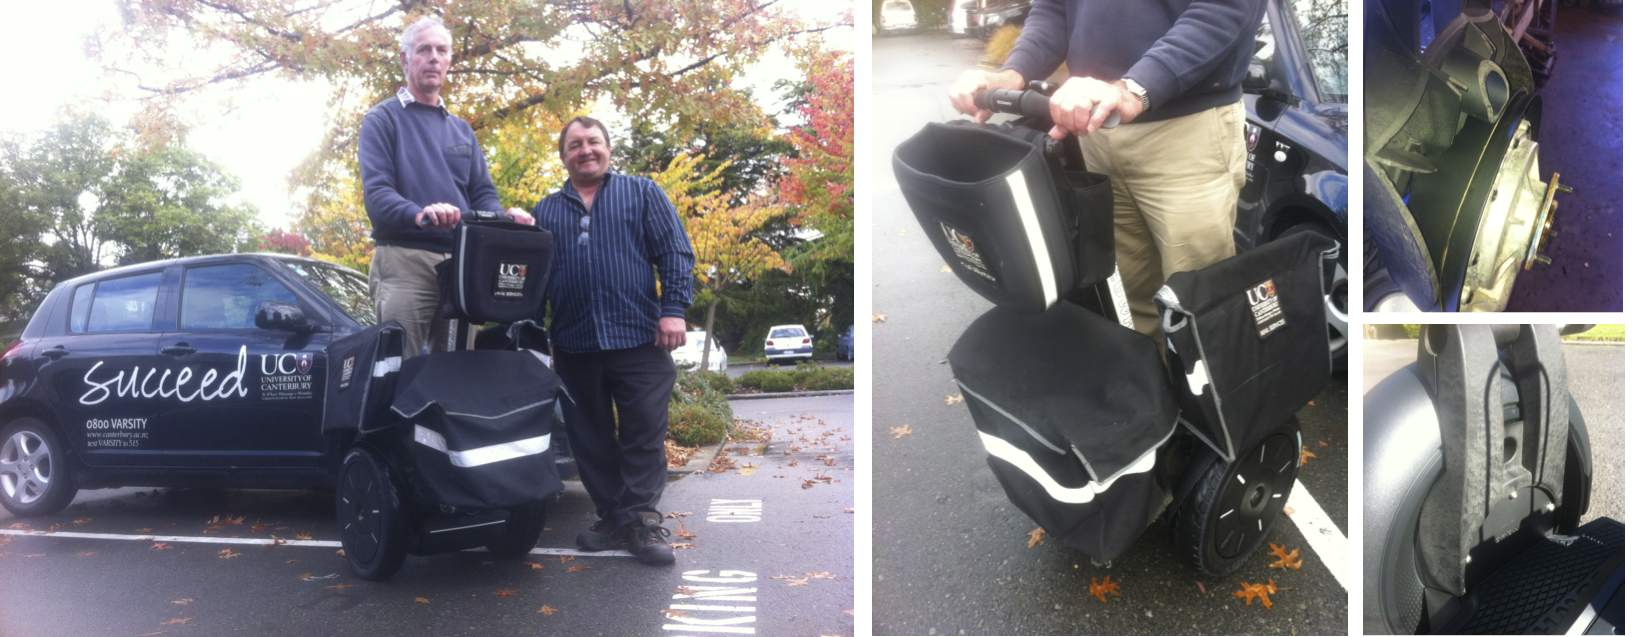 segway case analysis Managing segways early development case solution, describes the early development of the segway human transporter, and.